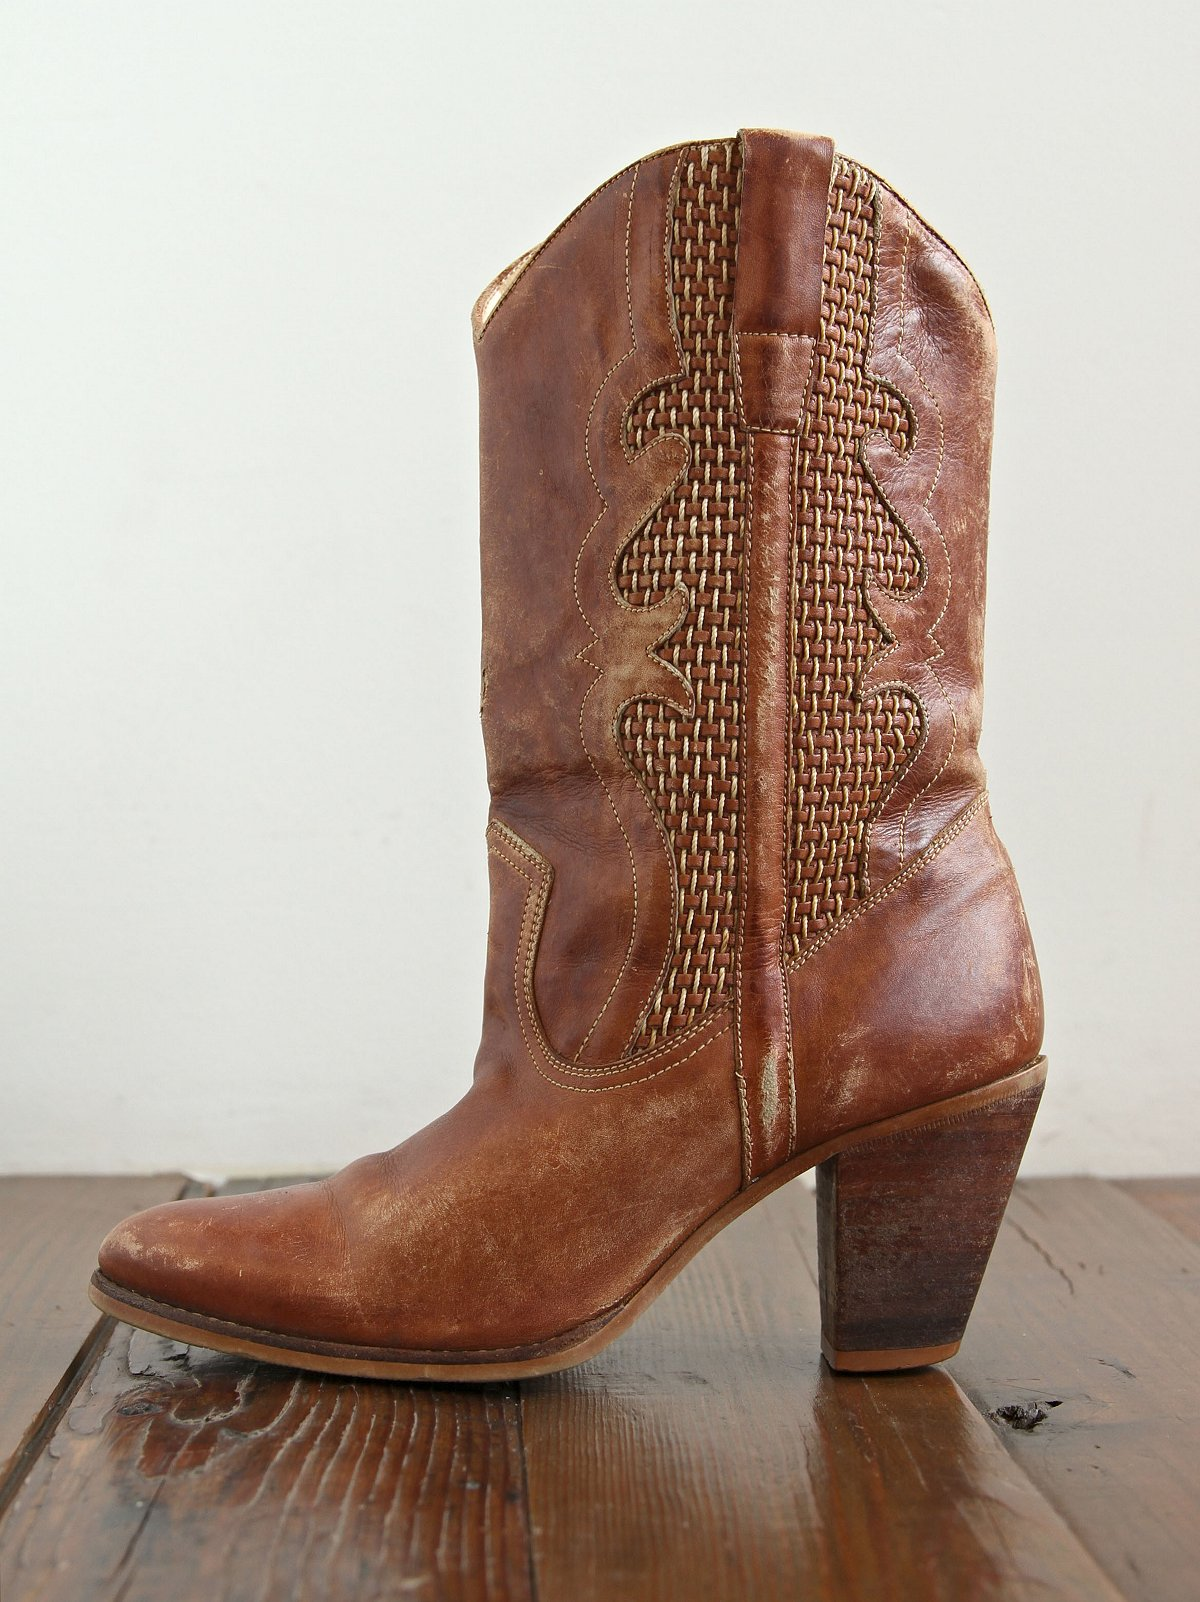 Vintage Brown Woven Leather Boots